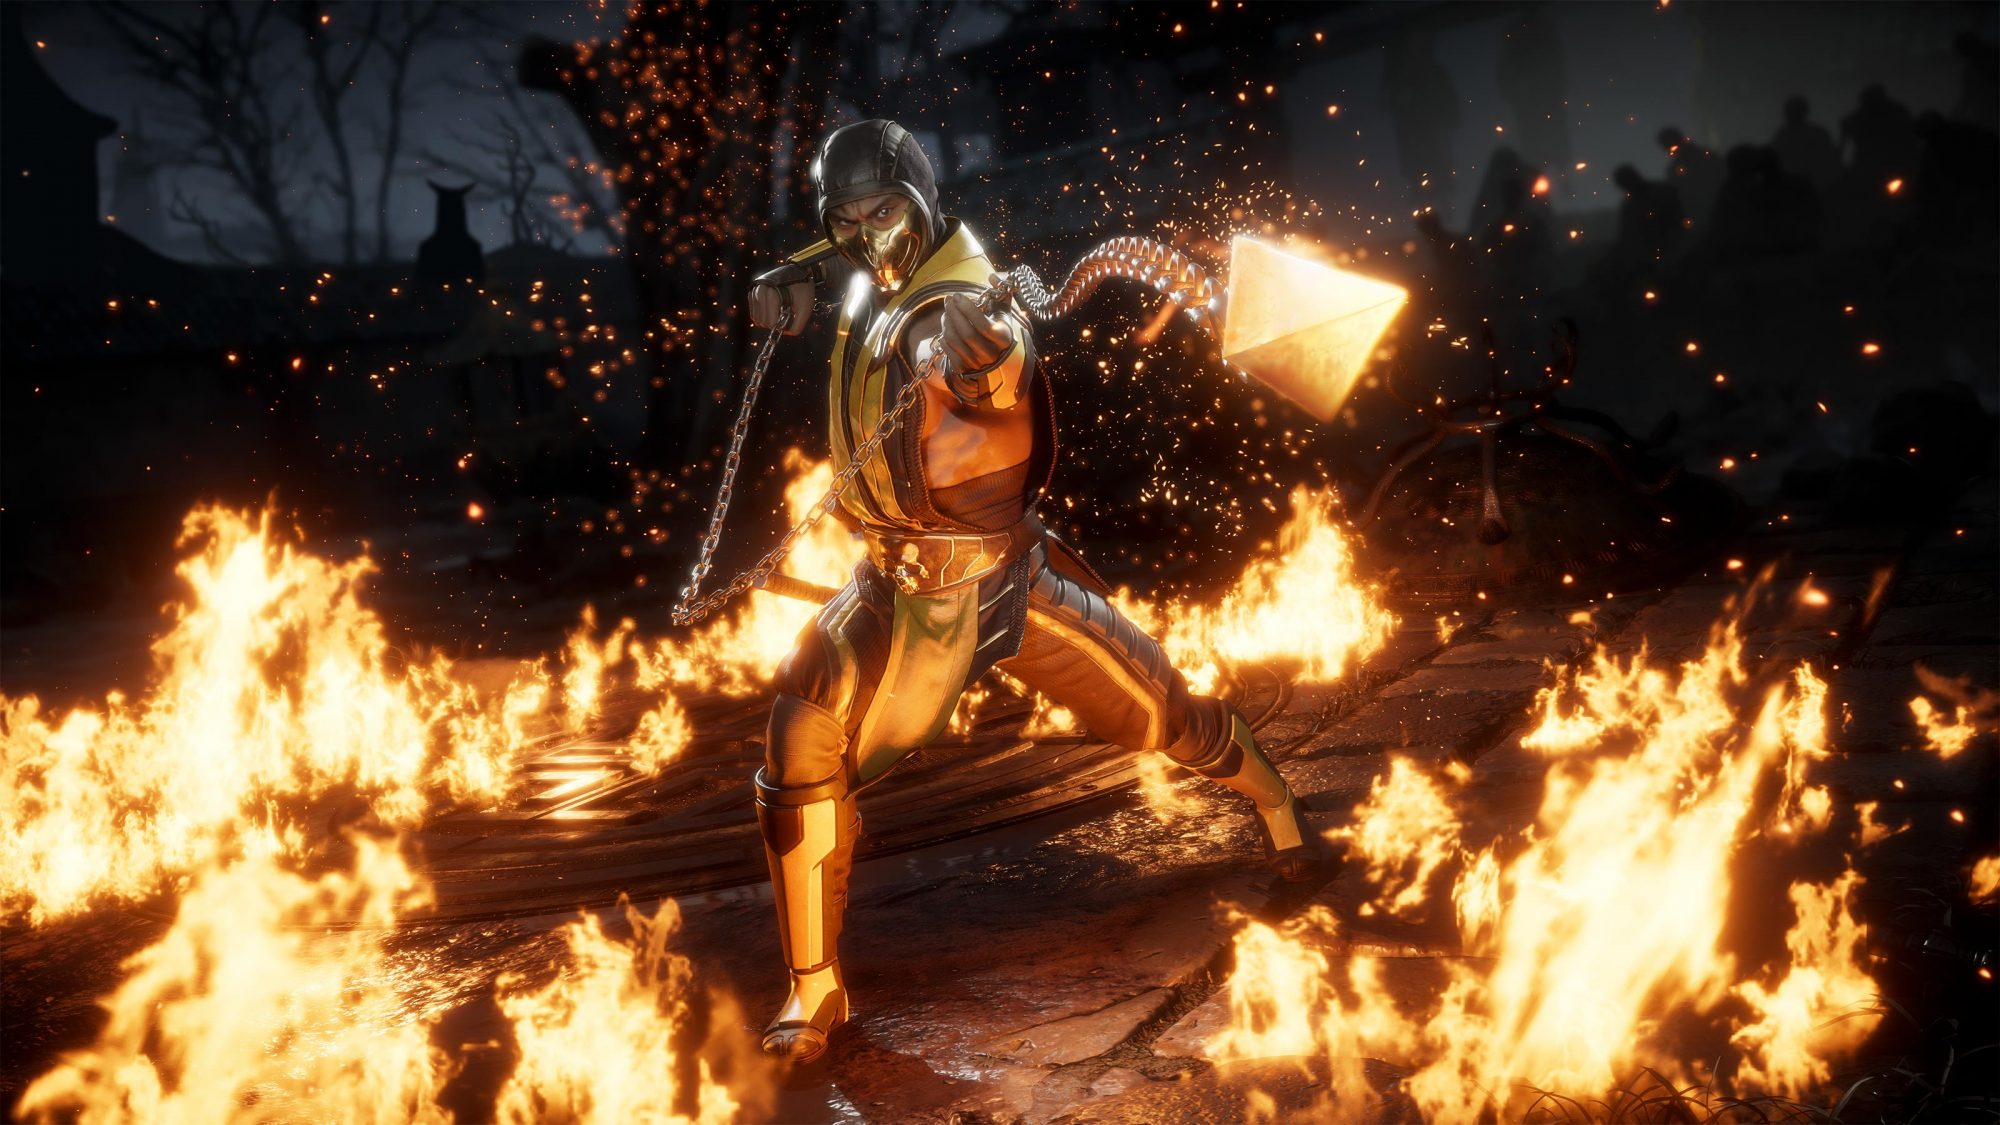 Mortal Kombat 11 video game Scorpion CR: NetherRealm Studios/Warner Bros. Interactive Entertainment